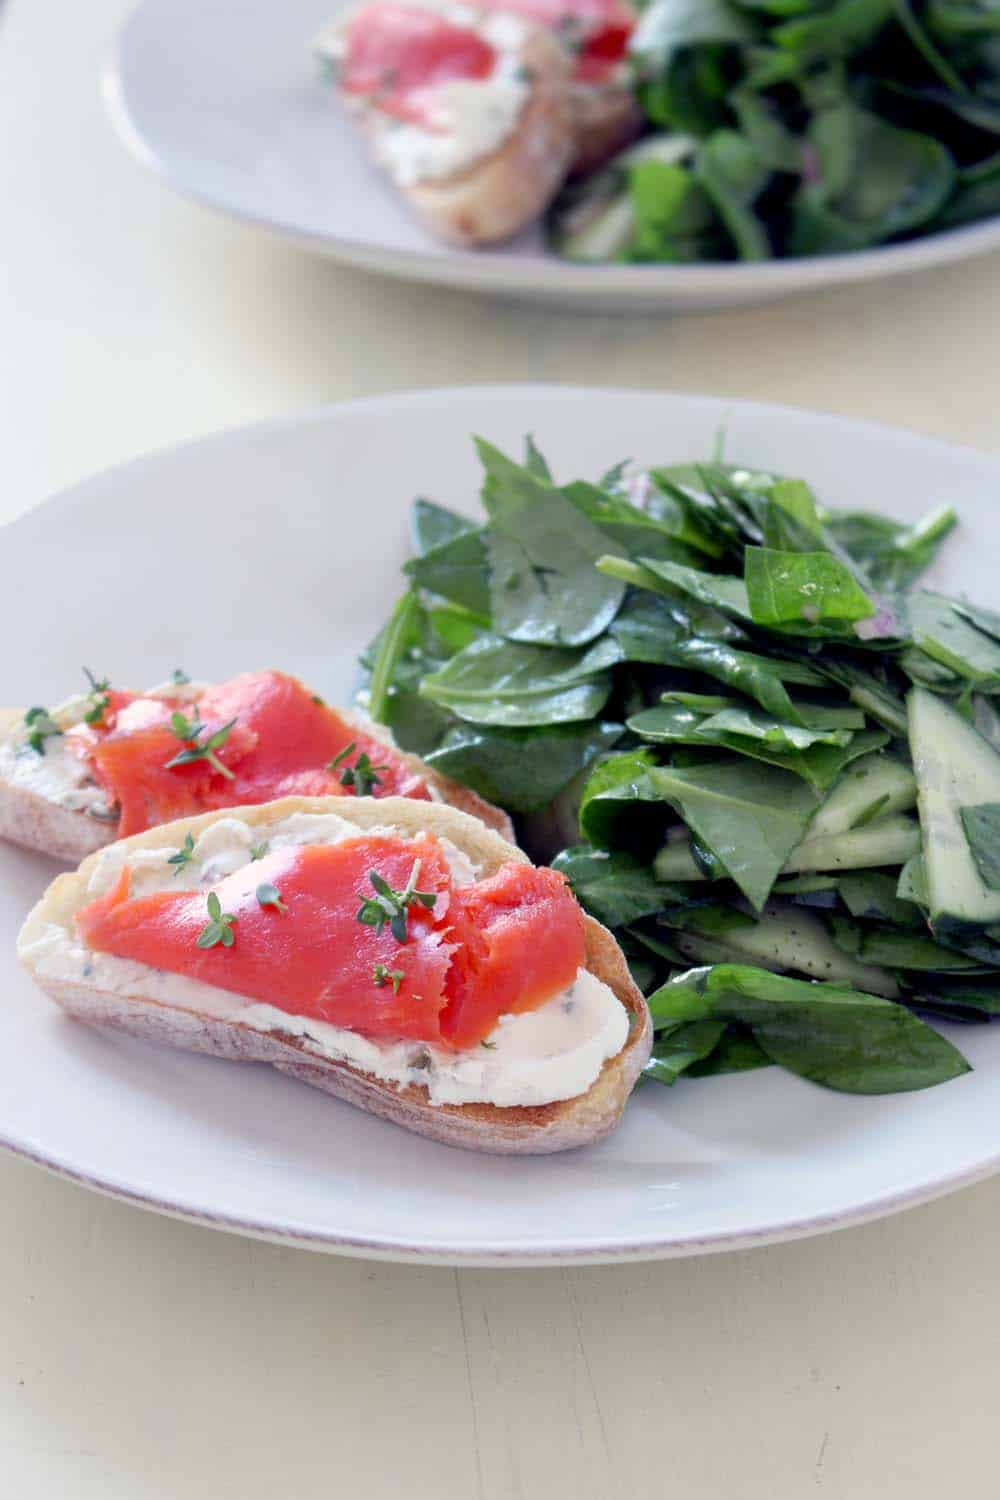 Smoked Salmon and Caper Cream Cheese Toast | Capers, onions, and spices are mixed together with cream cheese, spread on toast, and topped with smoked salmon. Perfect for breakfast, a light lunch or dinner, or as a party appetizer!